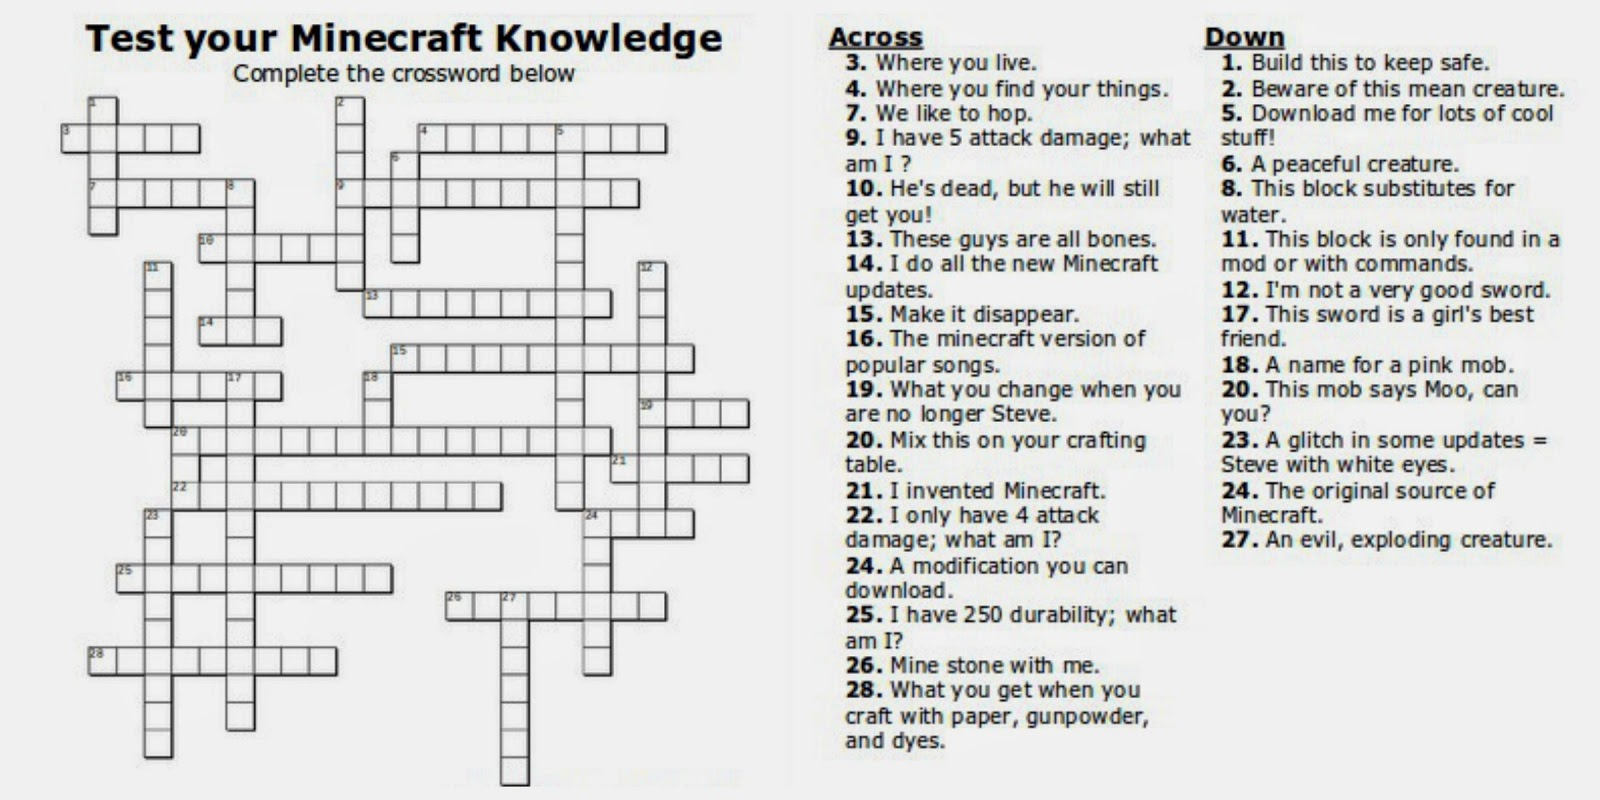 Free Printable Minecraft Crossword Search: Test Your Minecraft - Printable Teenage Crossword Puzzles